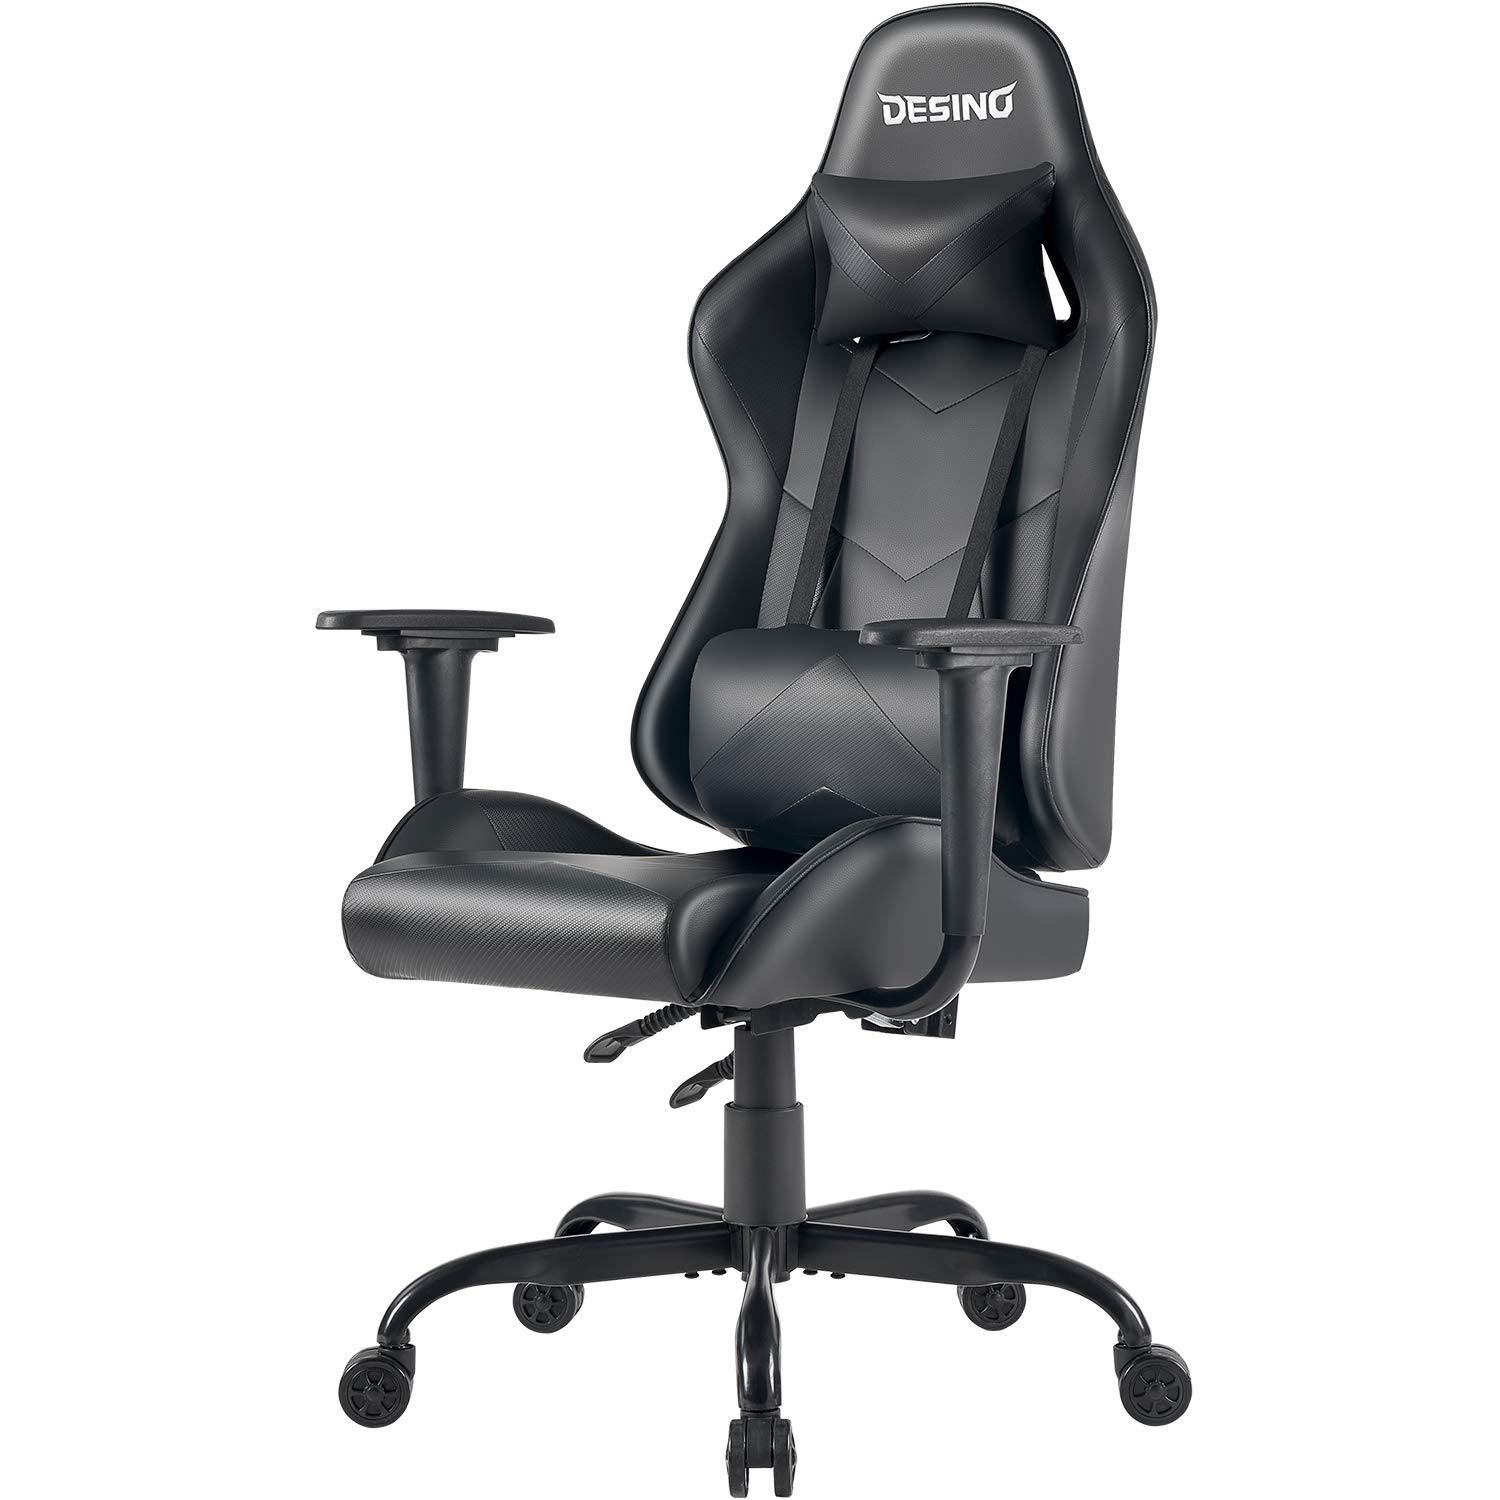 DESINO Gaming Chair Racing Style Home Office Ergonomic Swivel Rolling Computer Chair with Headrest and Adjustable Lumbar Support for Adults Kids Black